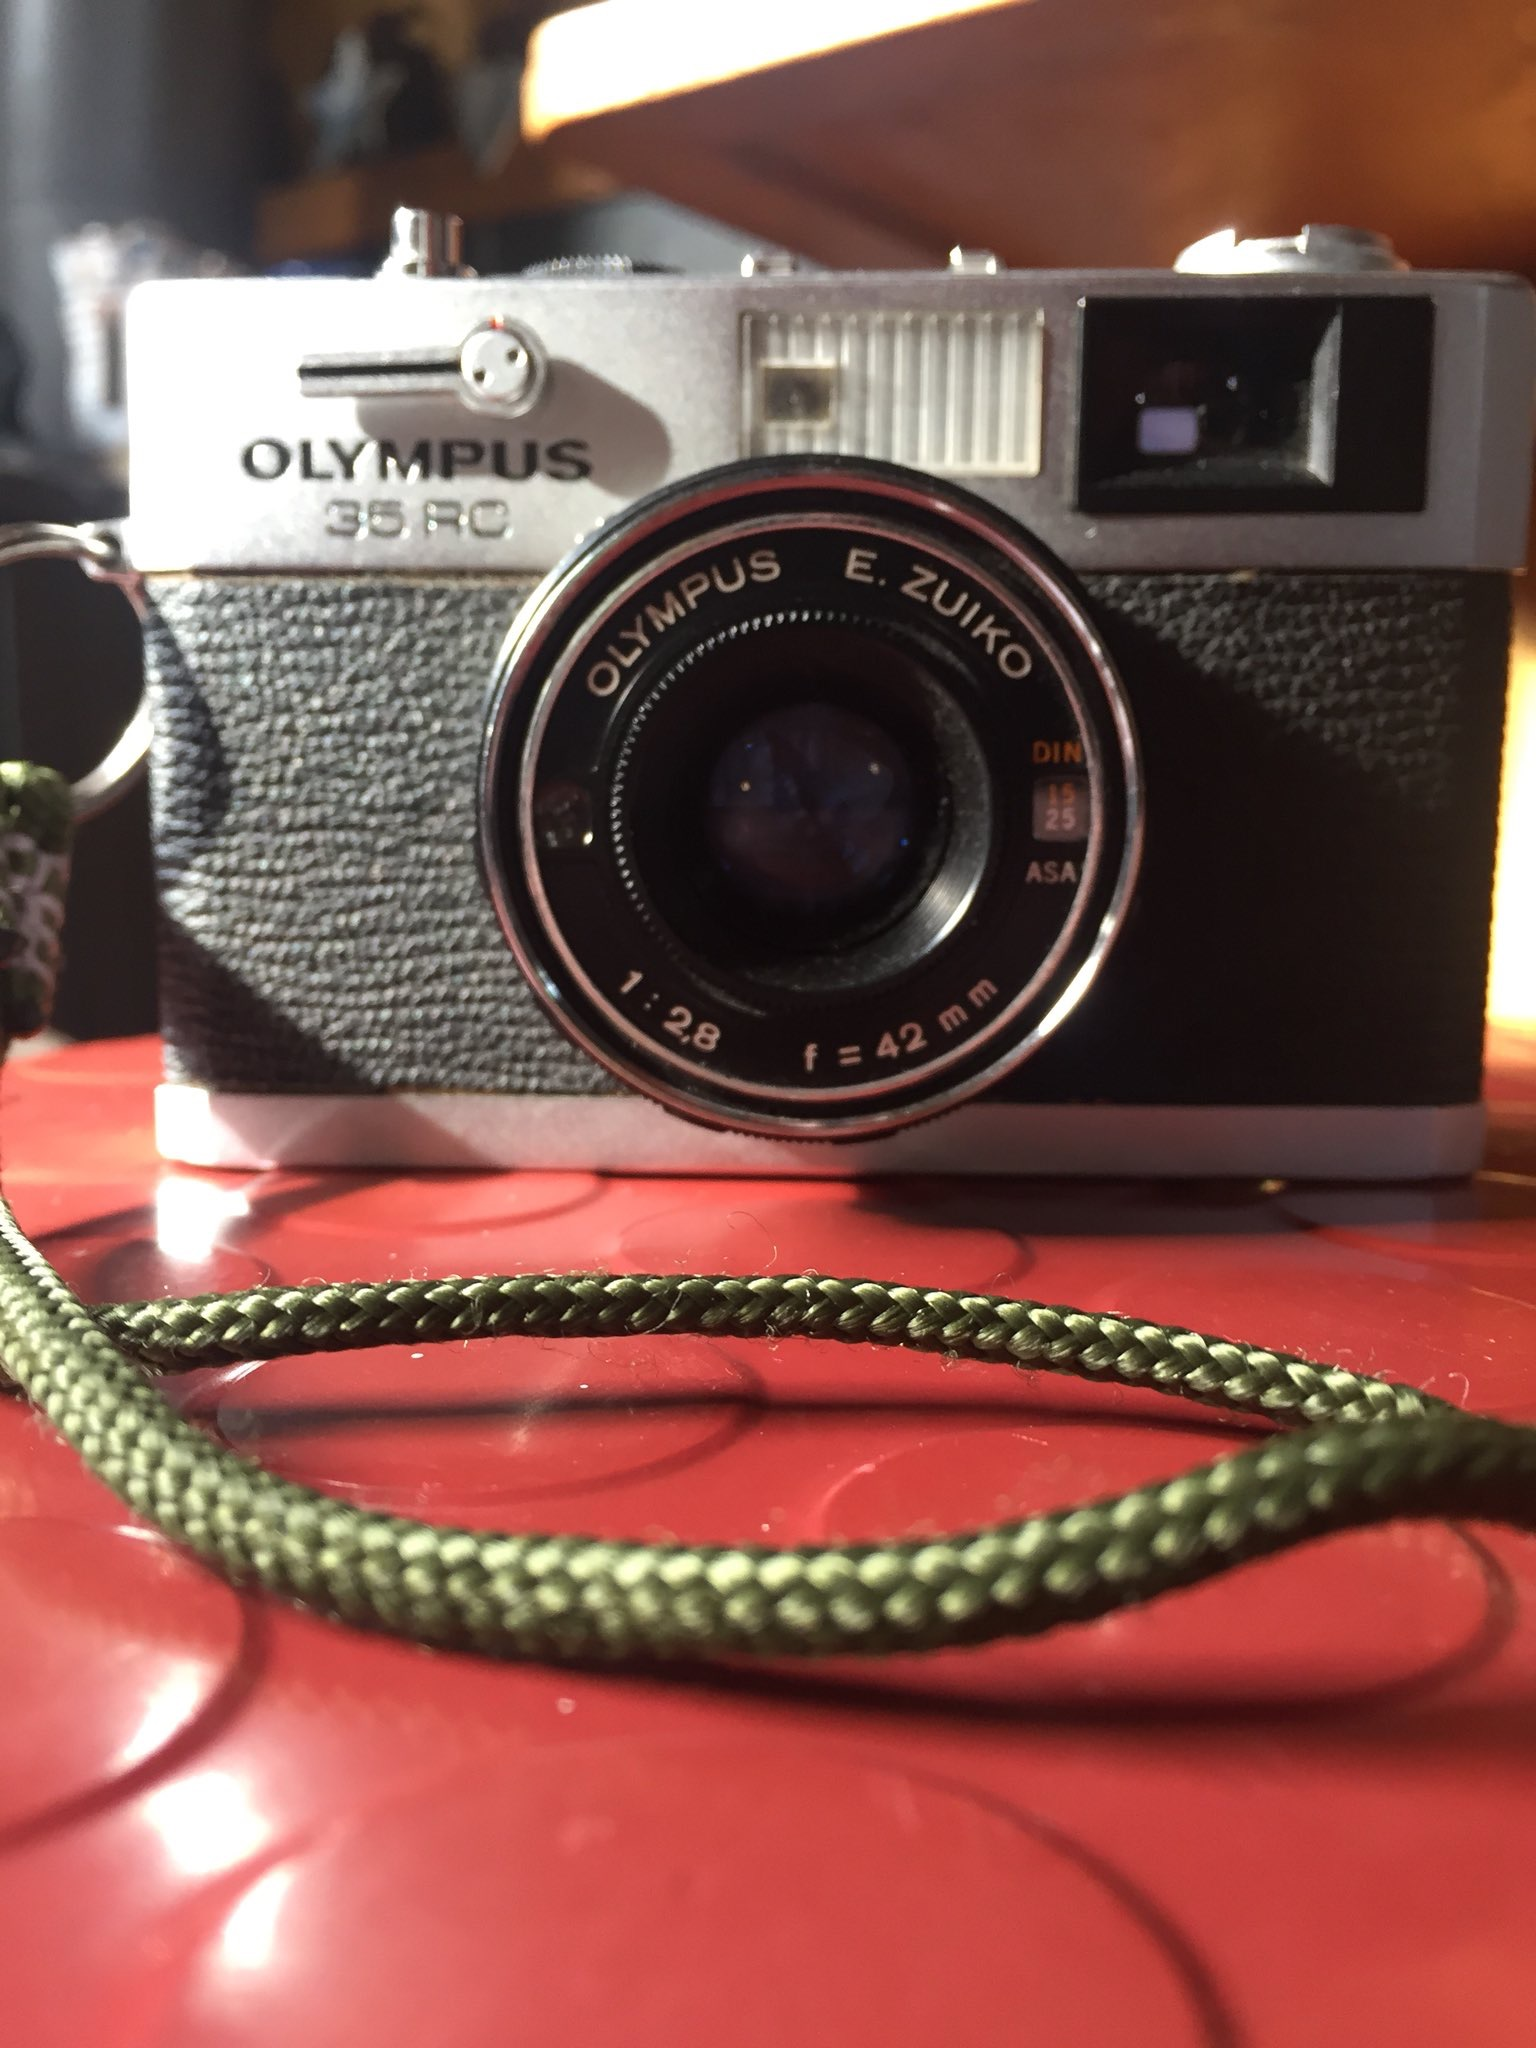 The Olympus 35RC rangefinder camera.